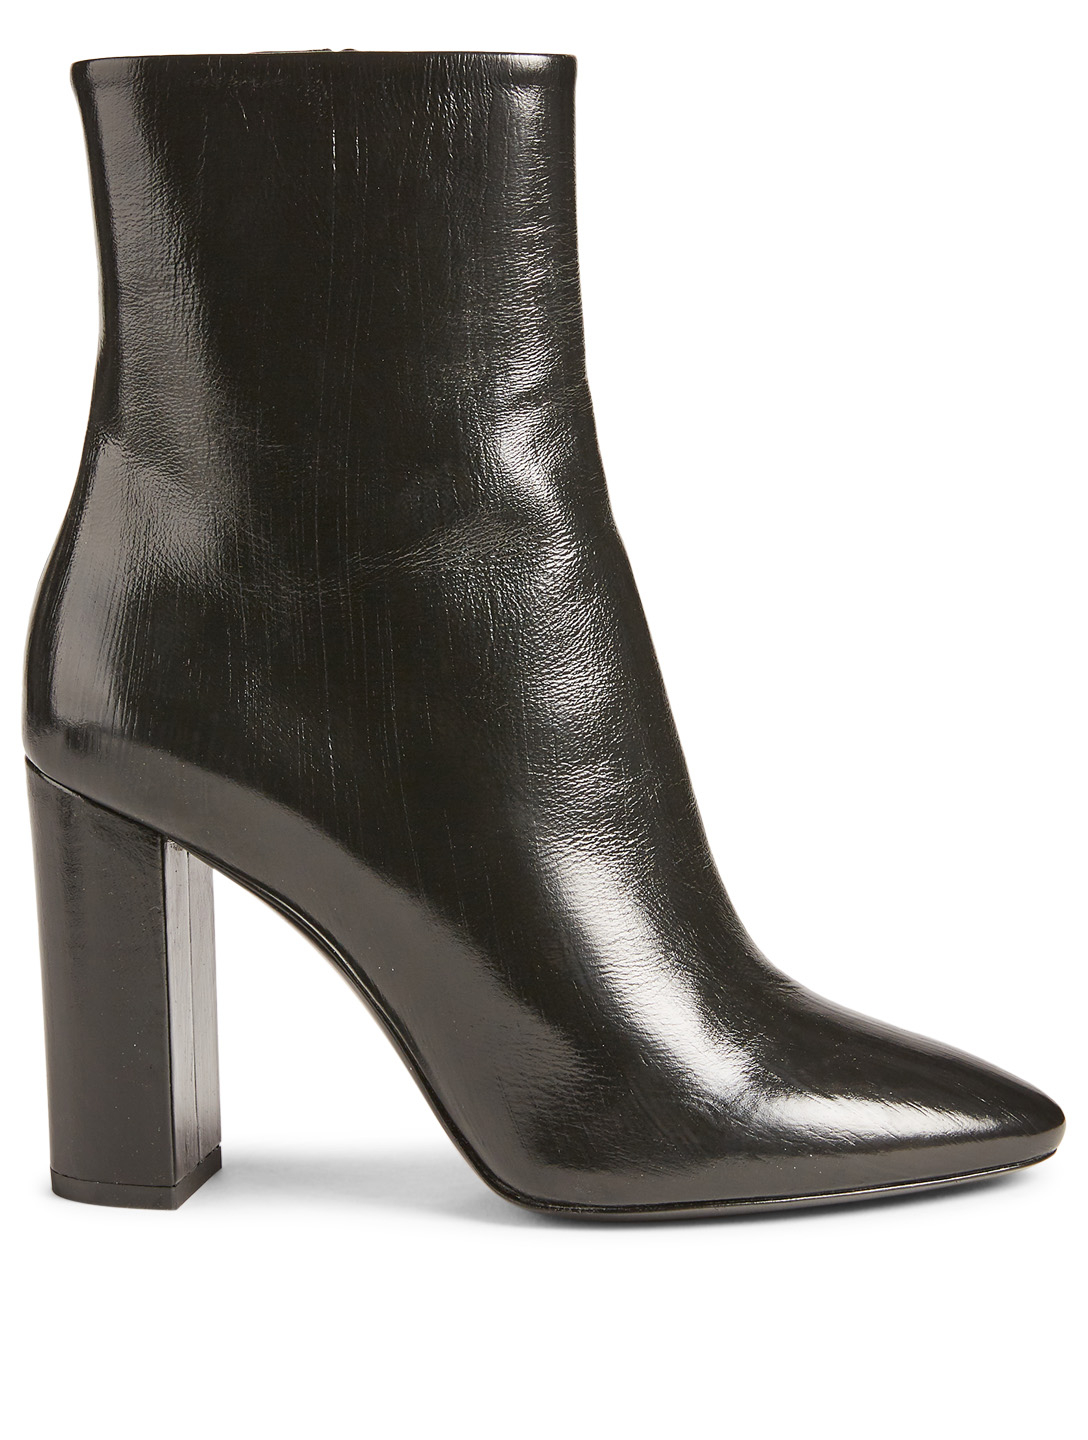 72dc946aaef3d0 SAINT LAURENT Lou Patent Leather Ankle Boots